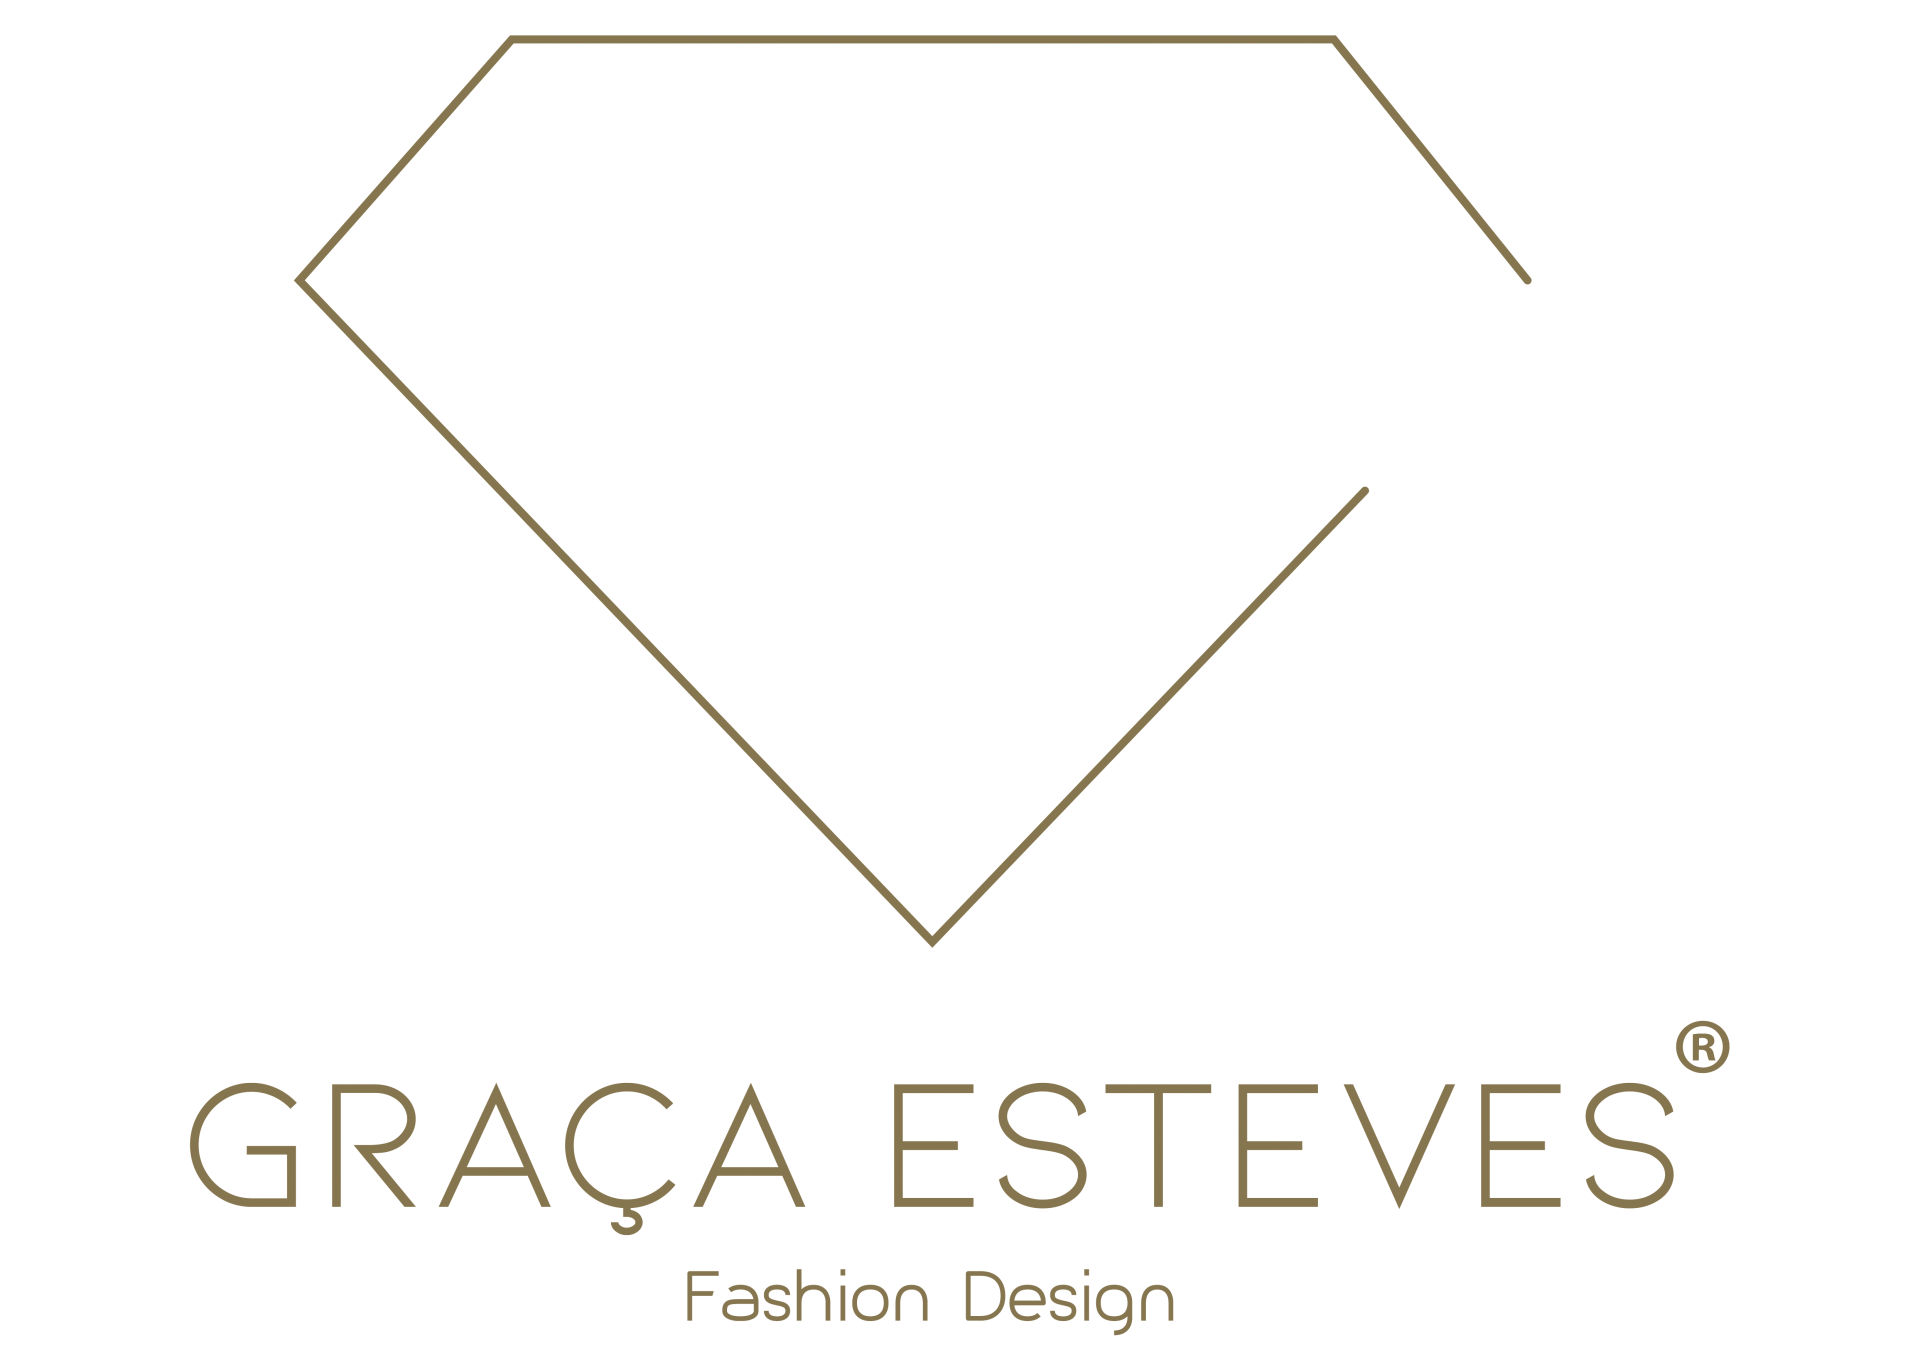 Graça Esteves